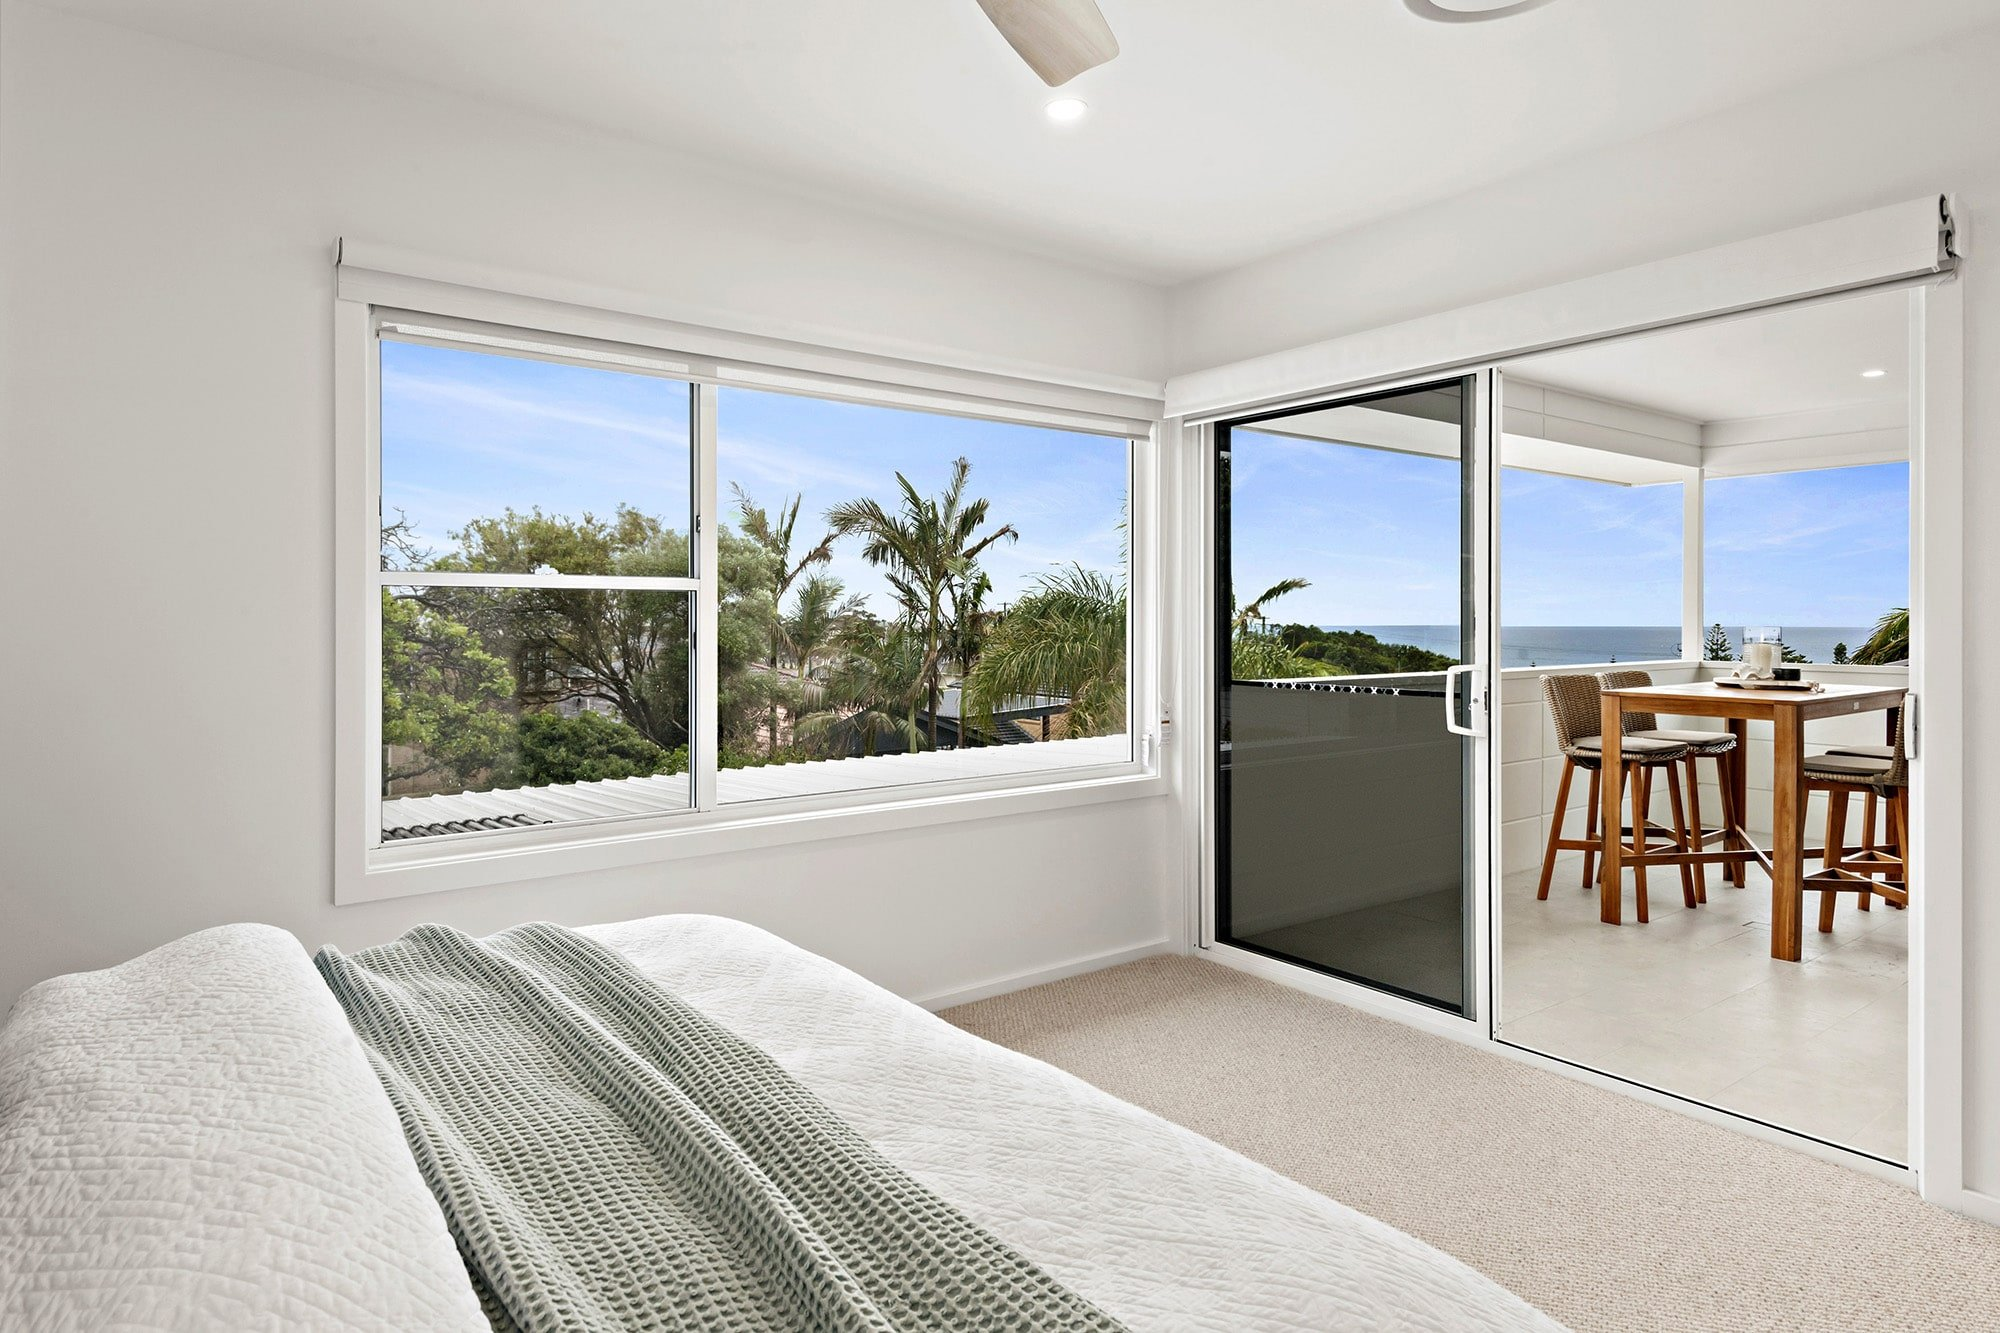 Bligh Street | Caves Beach - https://www.peonyandsilk.com.au/wp-content/uploads/2019/03/7-Bedroom.jpg